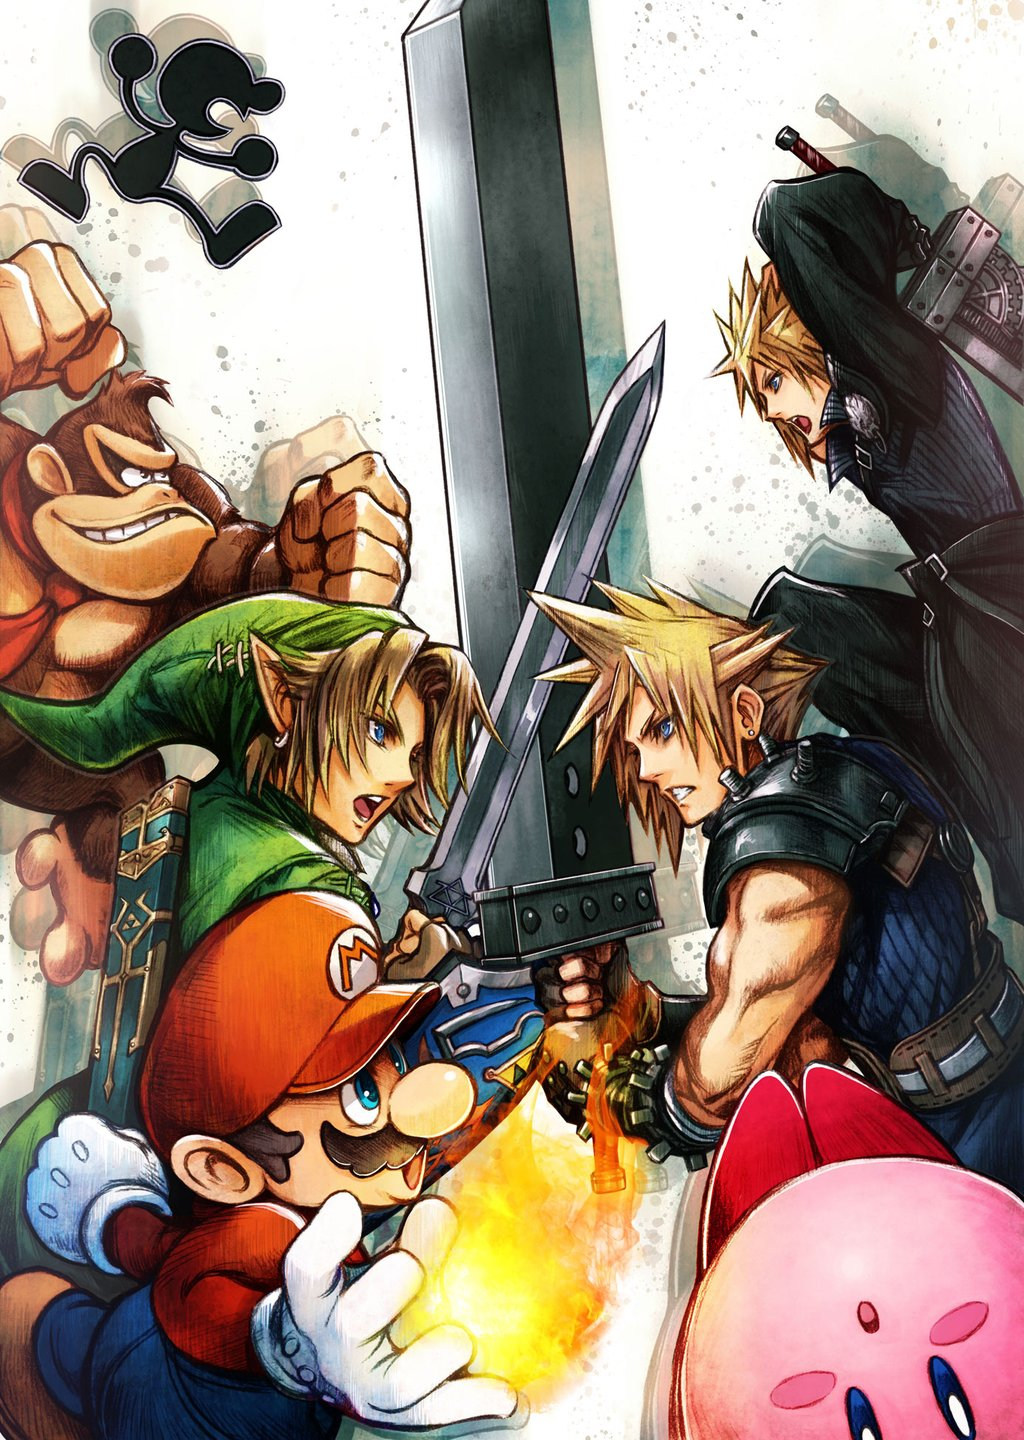 super_smash_bros_cloud_strife_final_fantasy_illustration